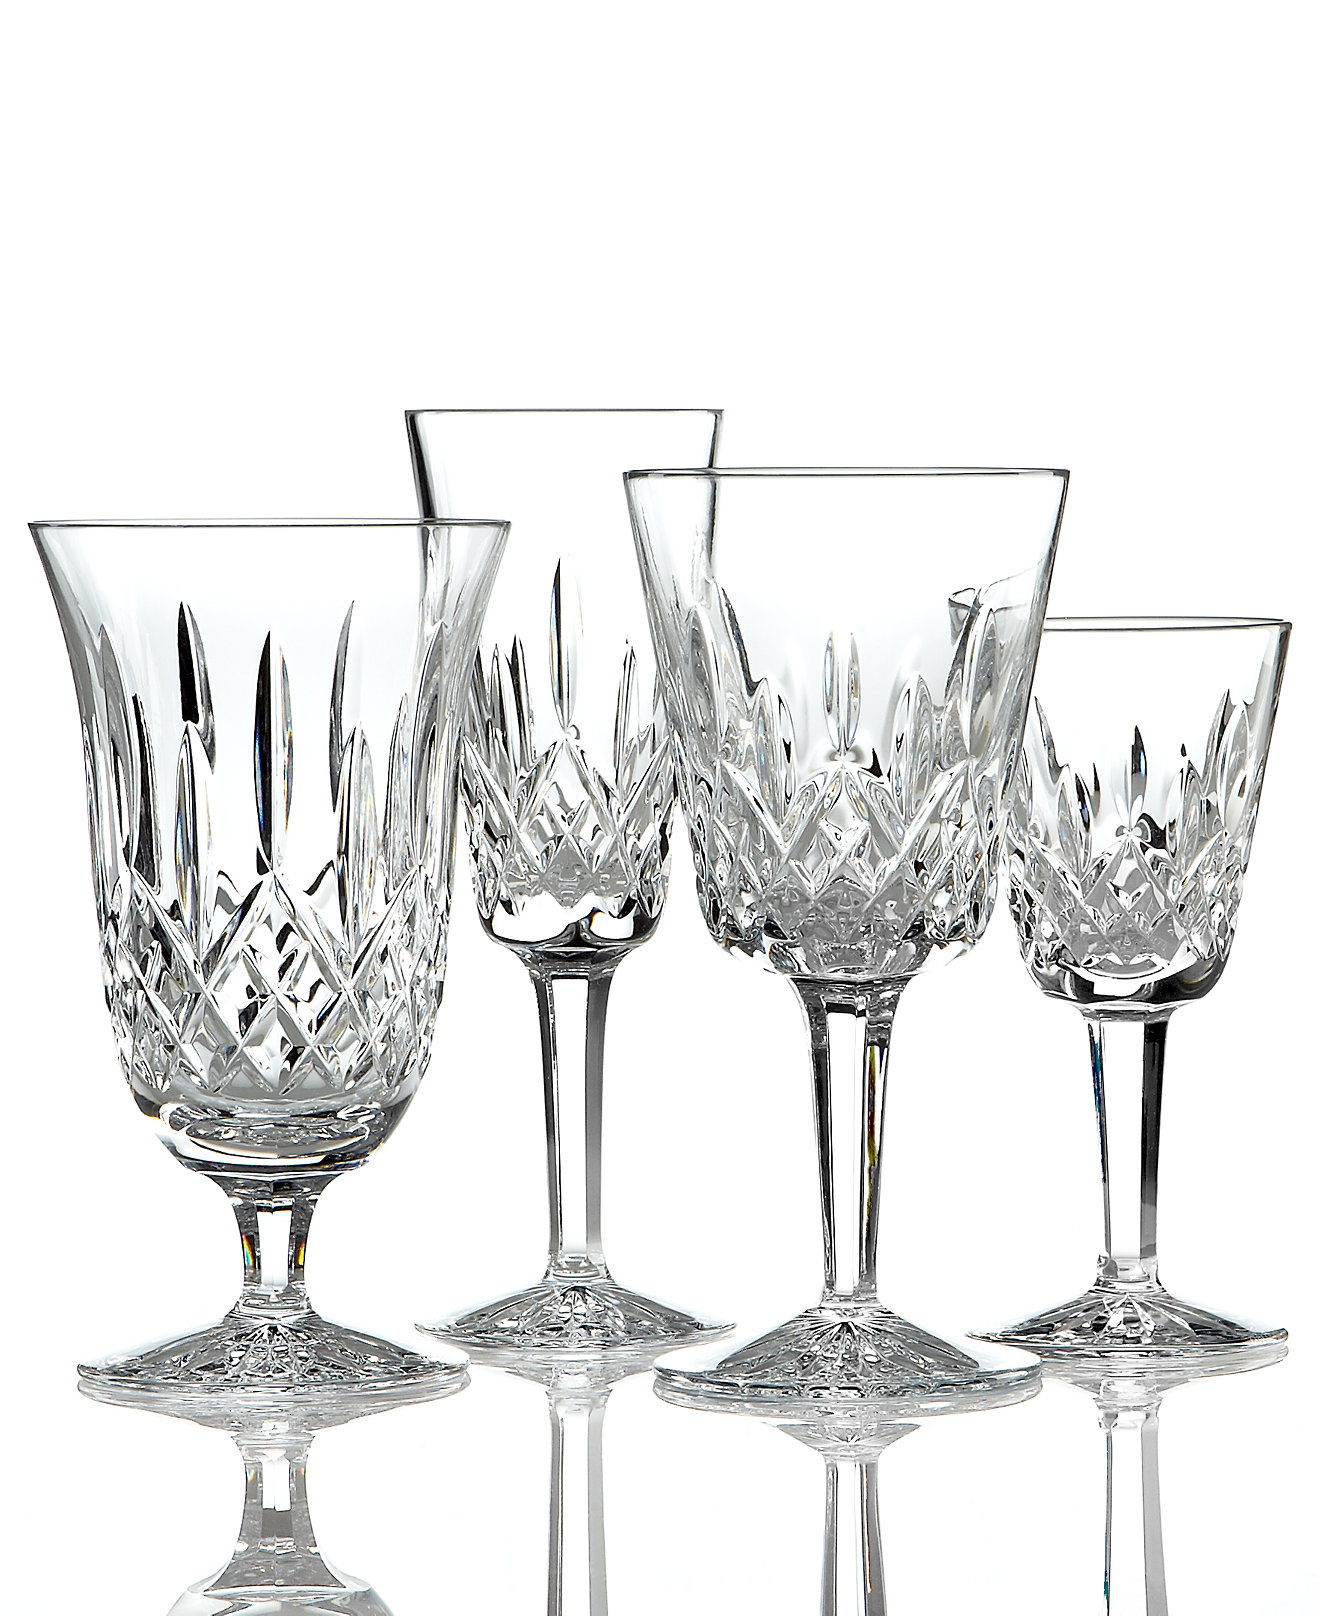 Appealing waterford lismore with lismore goblet design glass waterford lismore